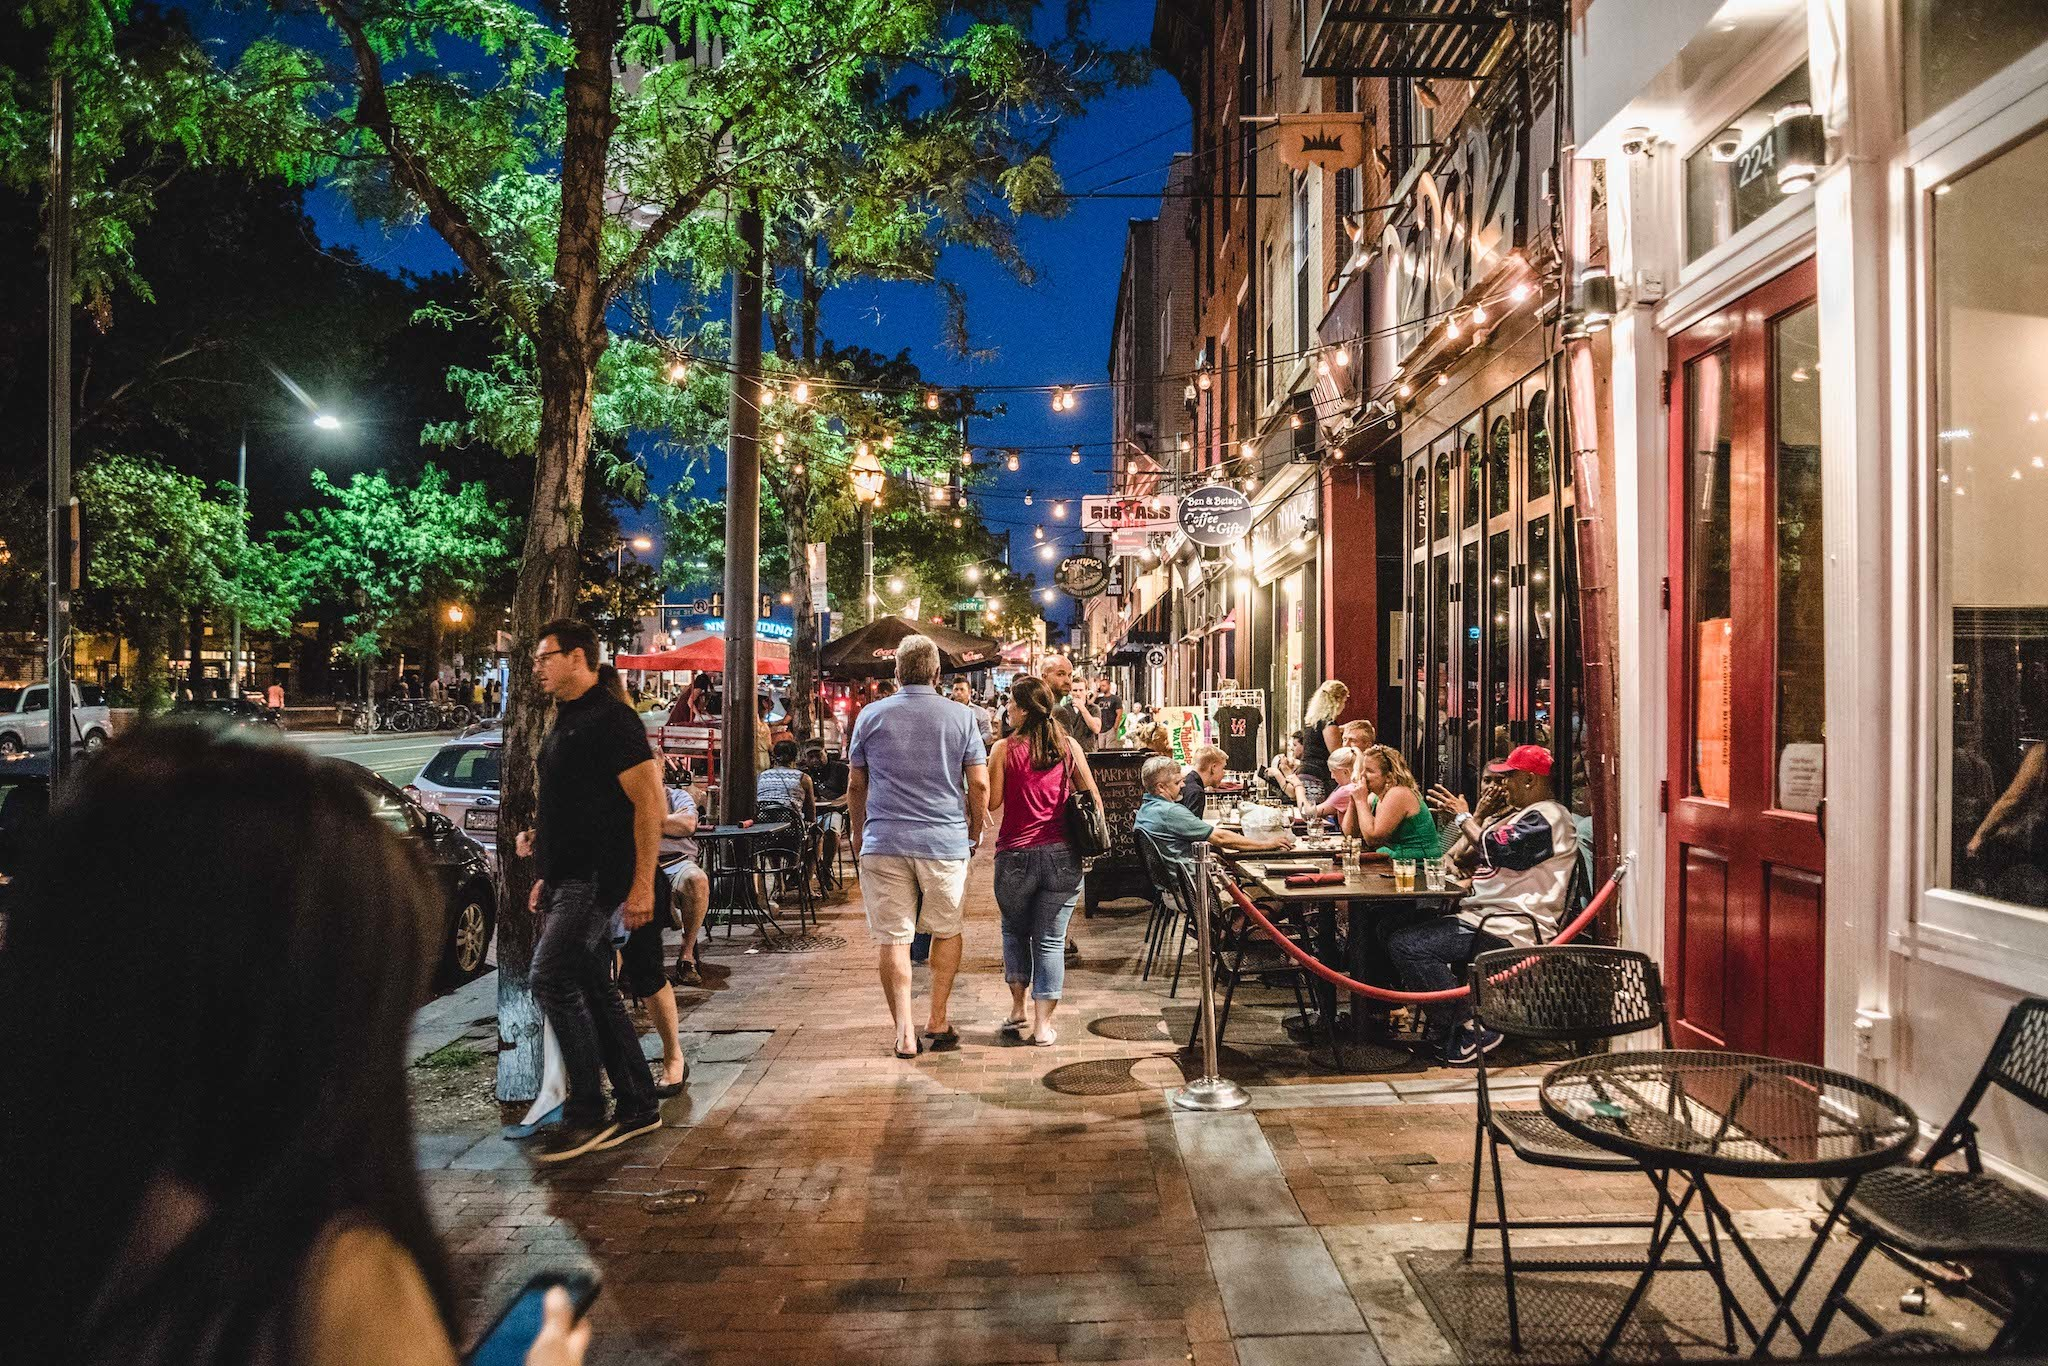 If you're looking for somewhere to stay in Philadelphia consider Old City with all its amazing historical sites.